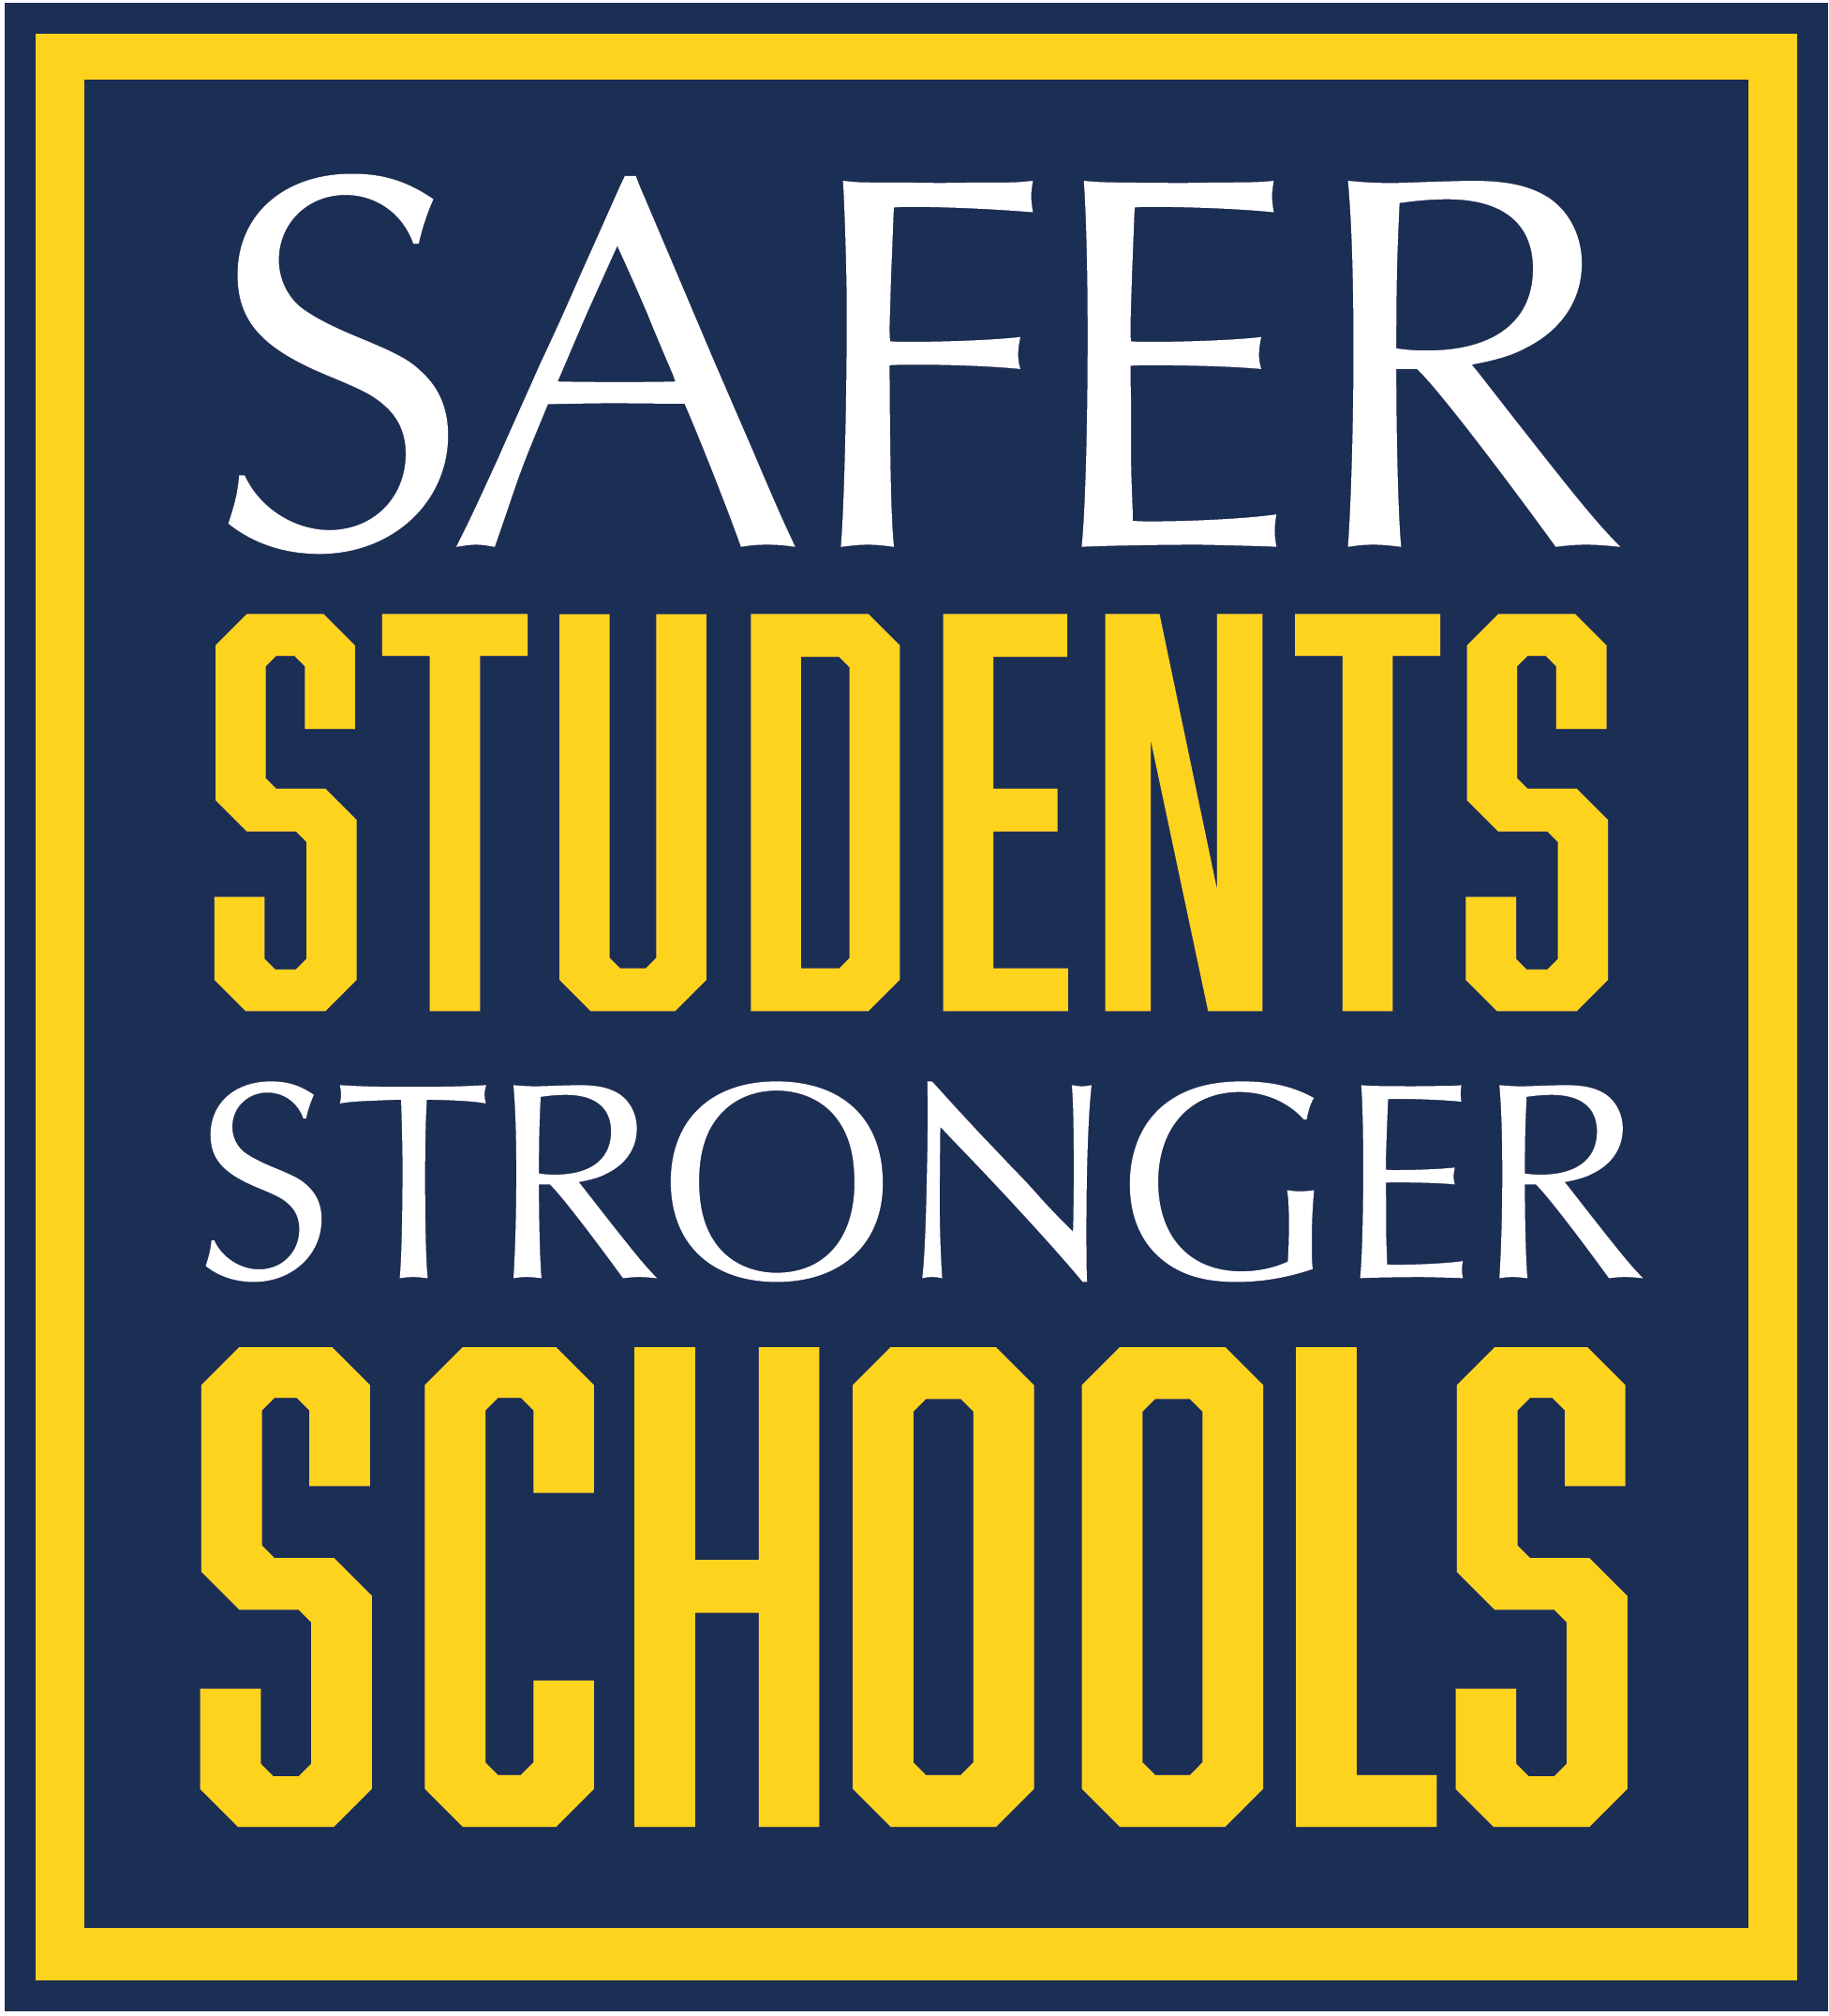 Safer Students, Stronger Schools